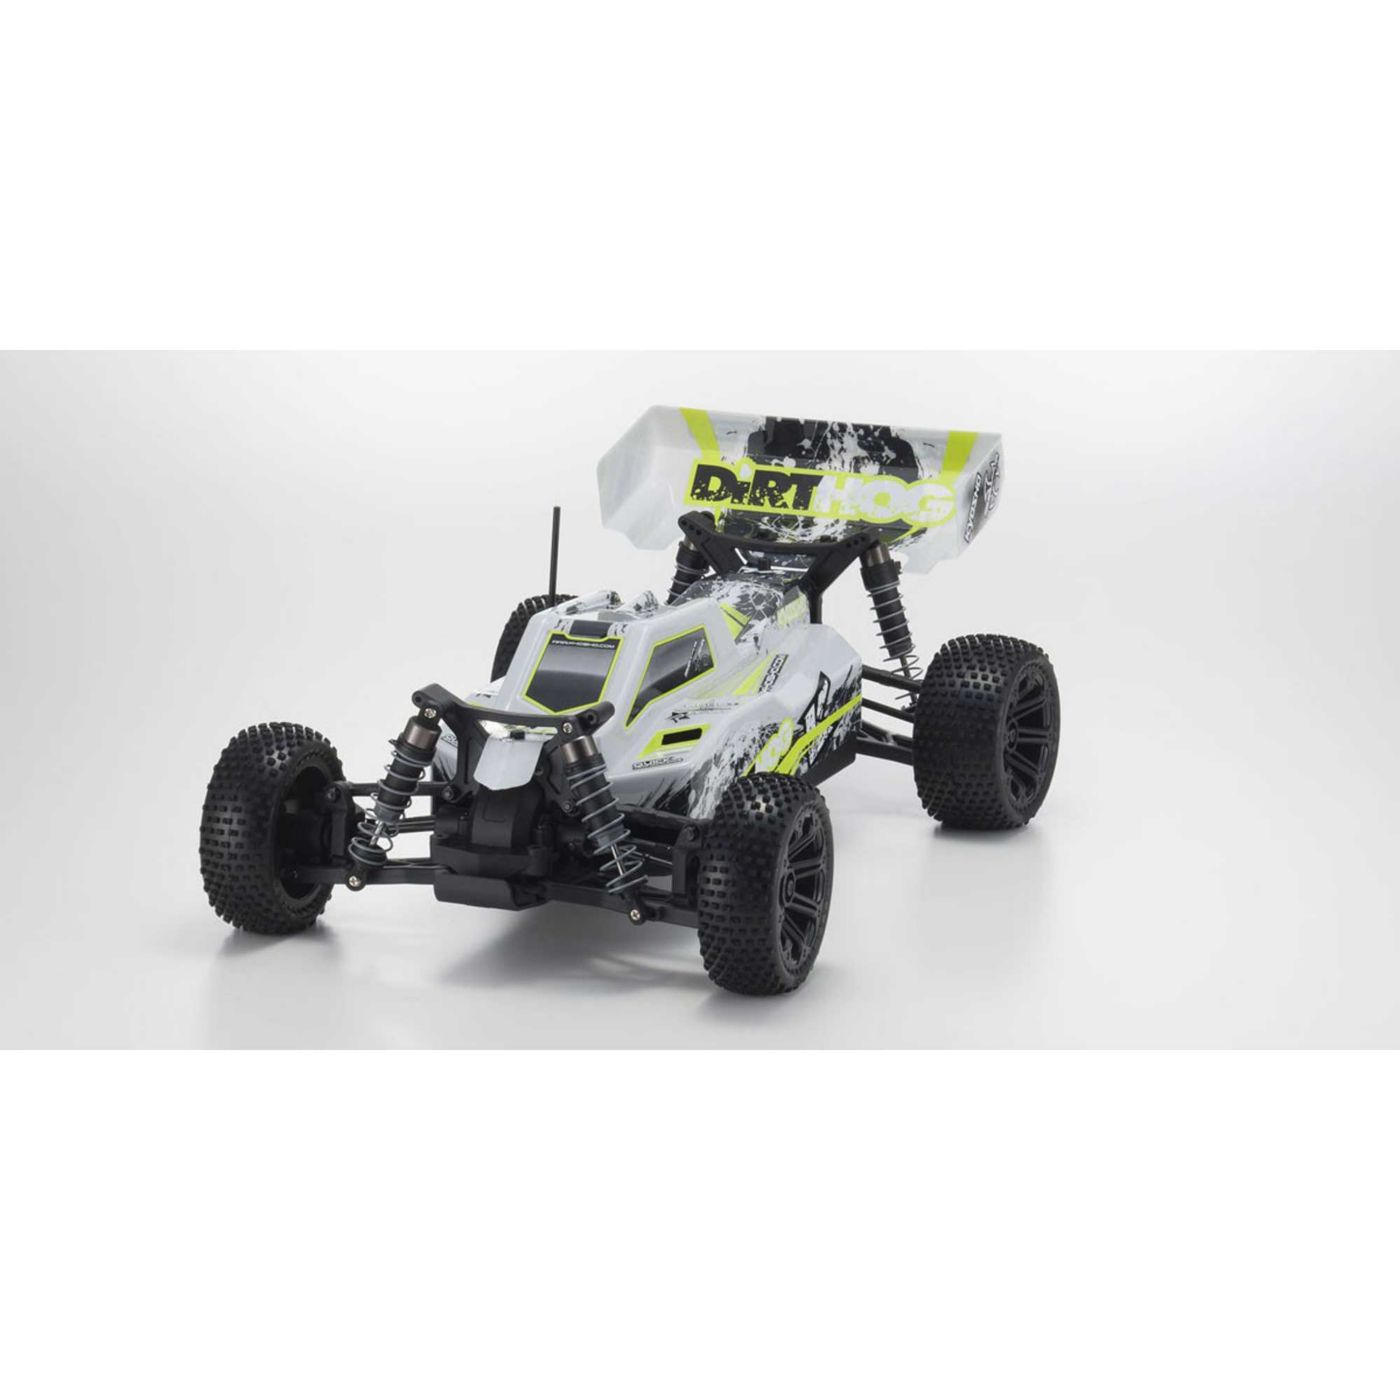 Details About Kyosho 1 10 Fazer Dirt Hog T1 4 Wheel Drive Electric Buggy Ready To Run Yellow